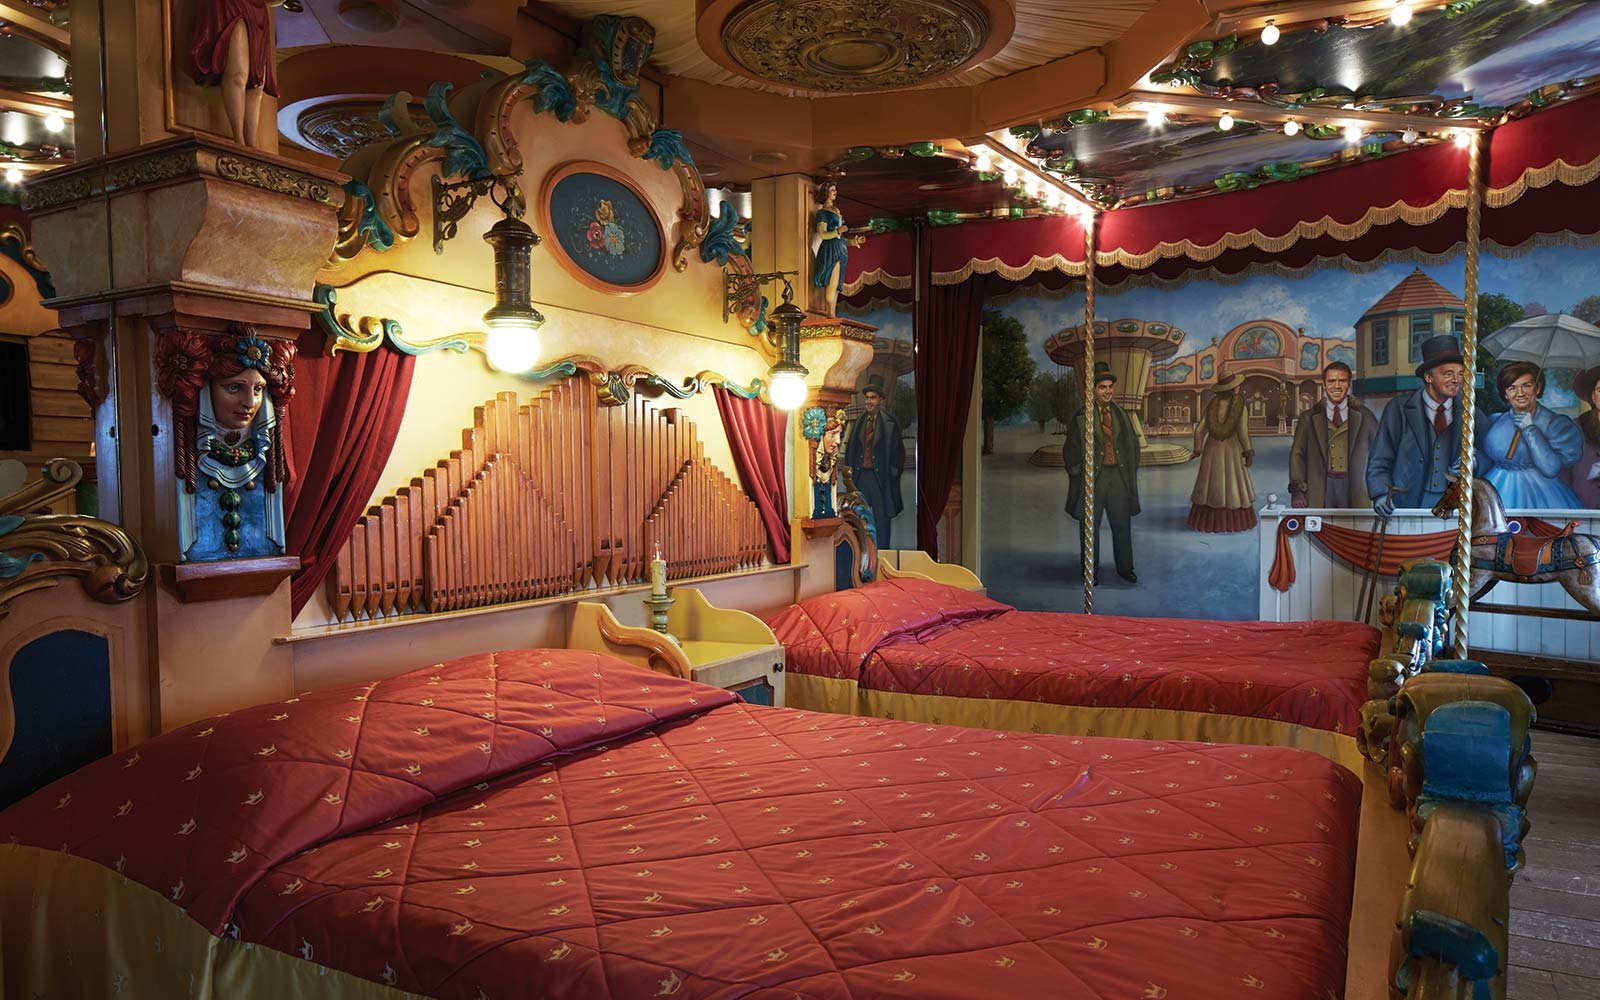 Not your conventional hotel rooms - unusual hotel stays ... |Unusual Hotel Rooms